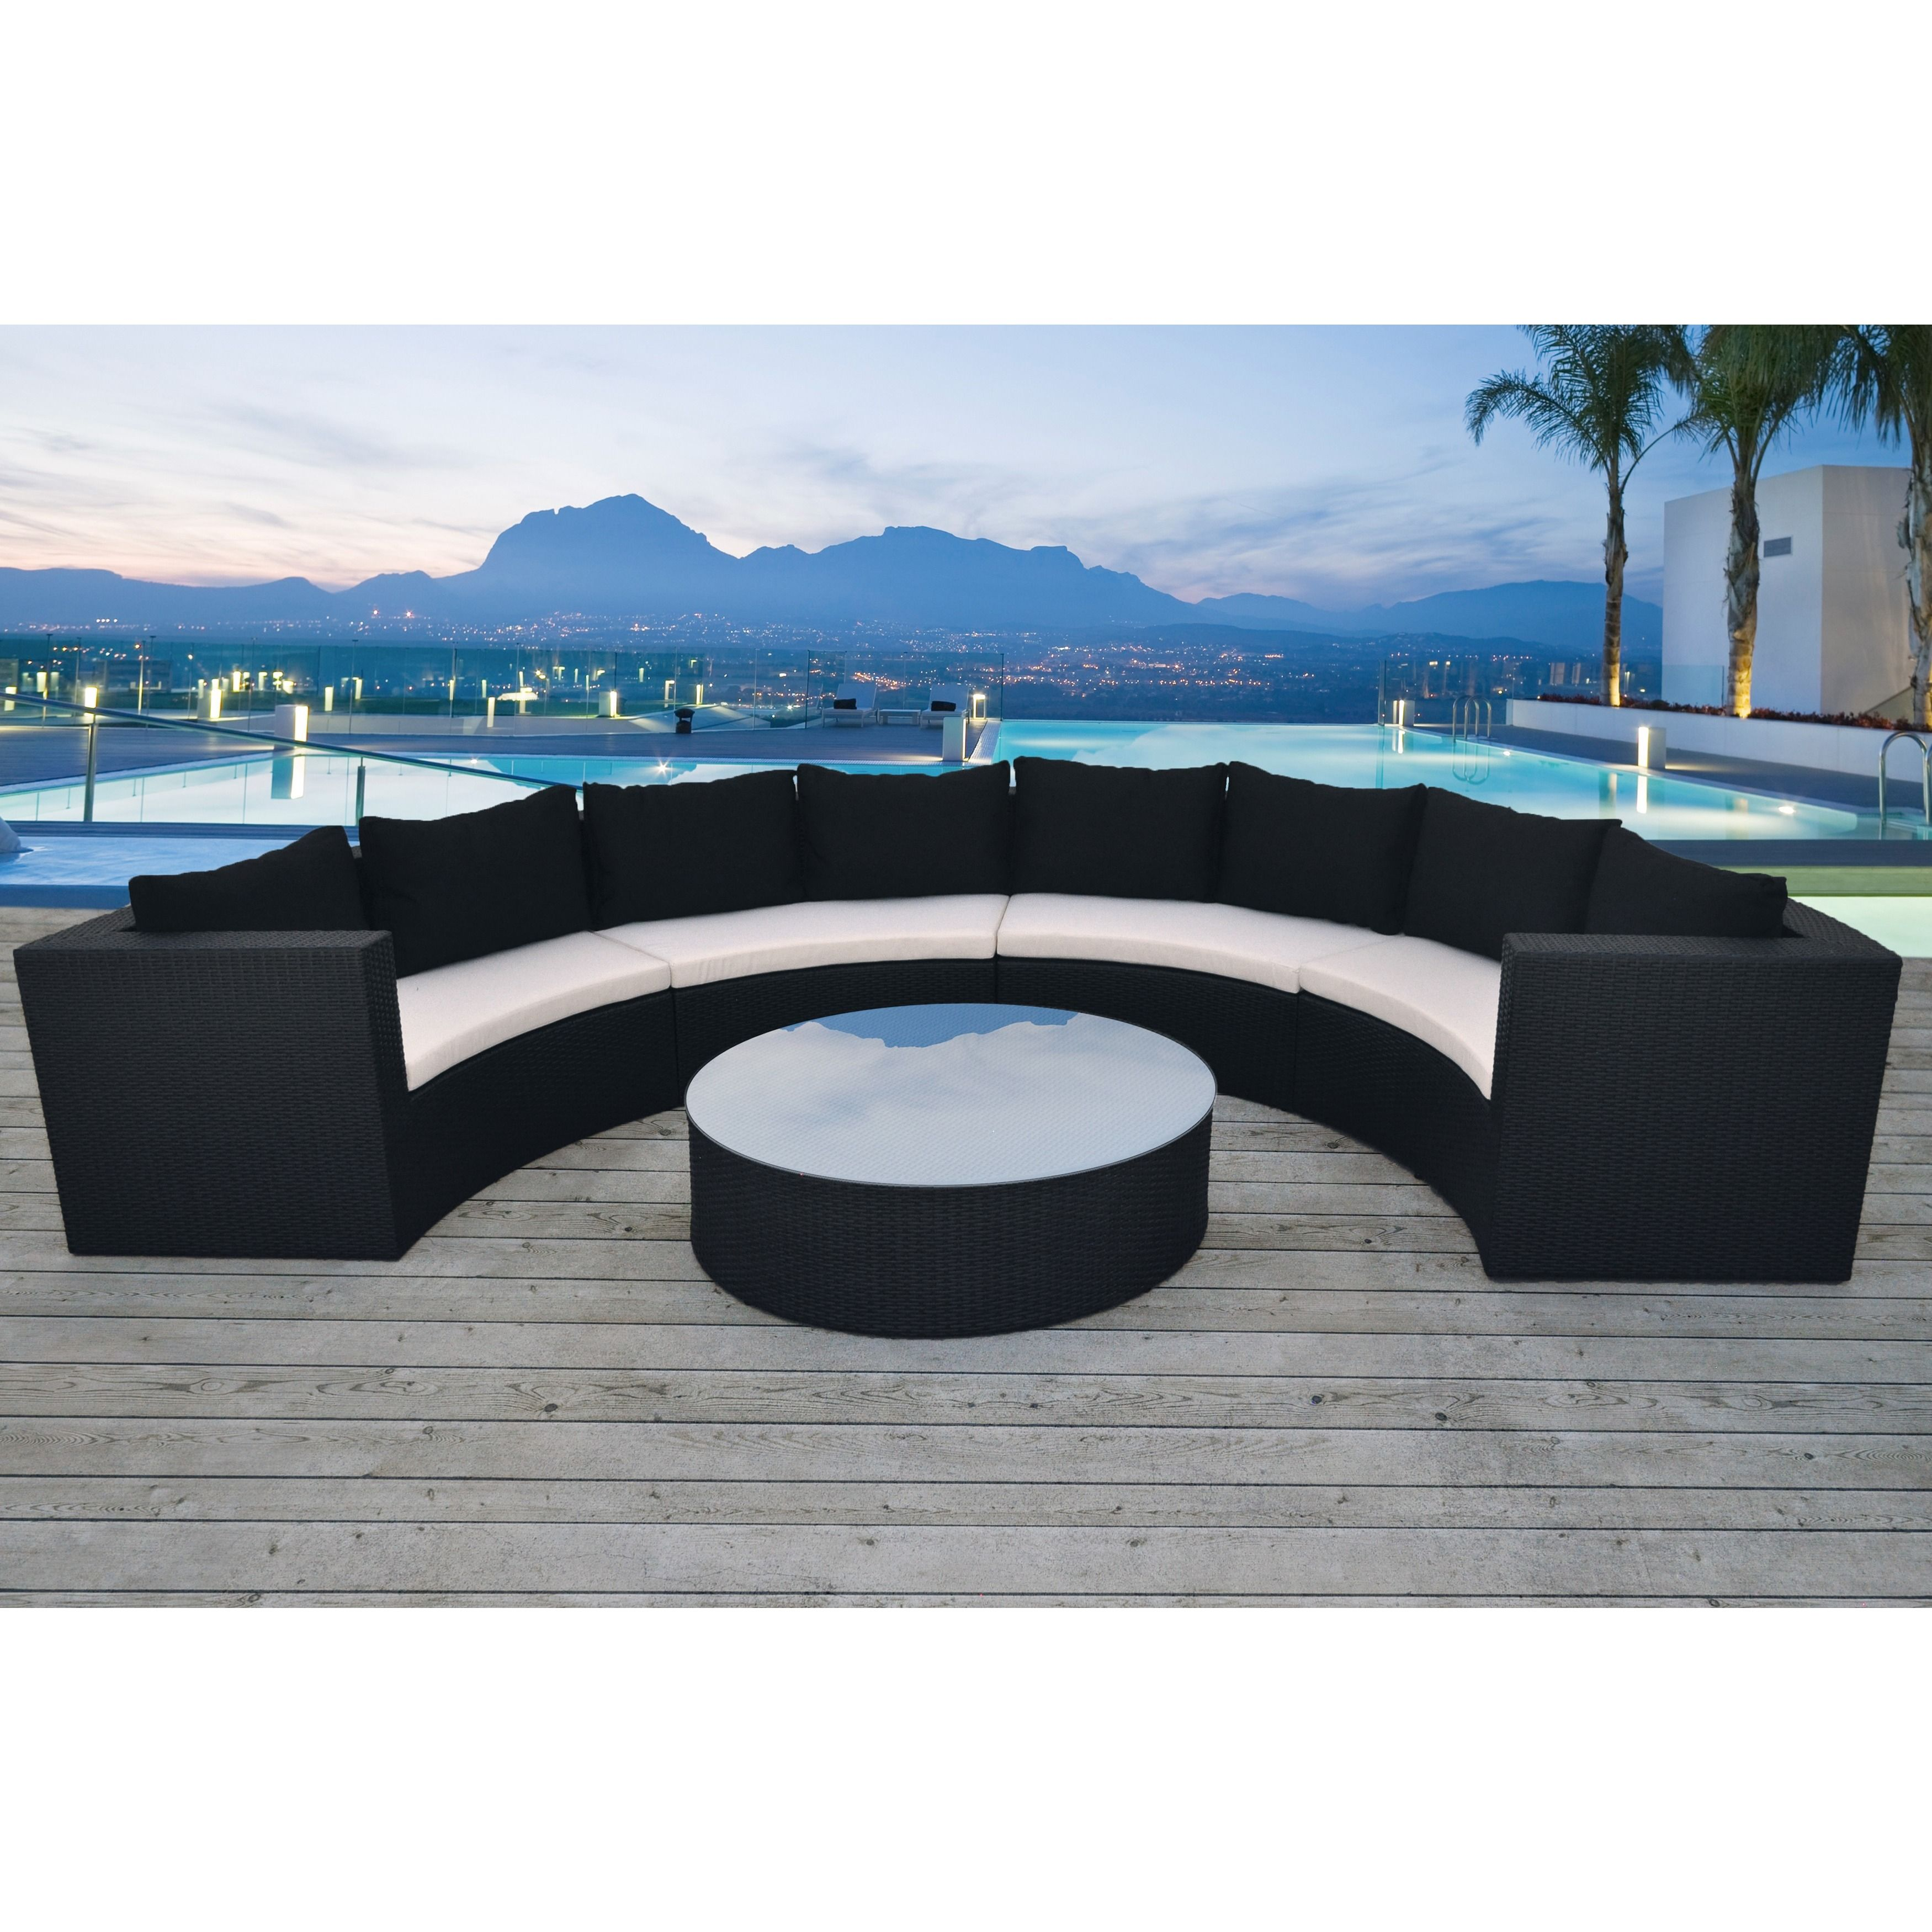 Solis Avalon Sectional Outdoor Deep Seated 5 piece Wicker Rattan